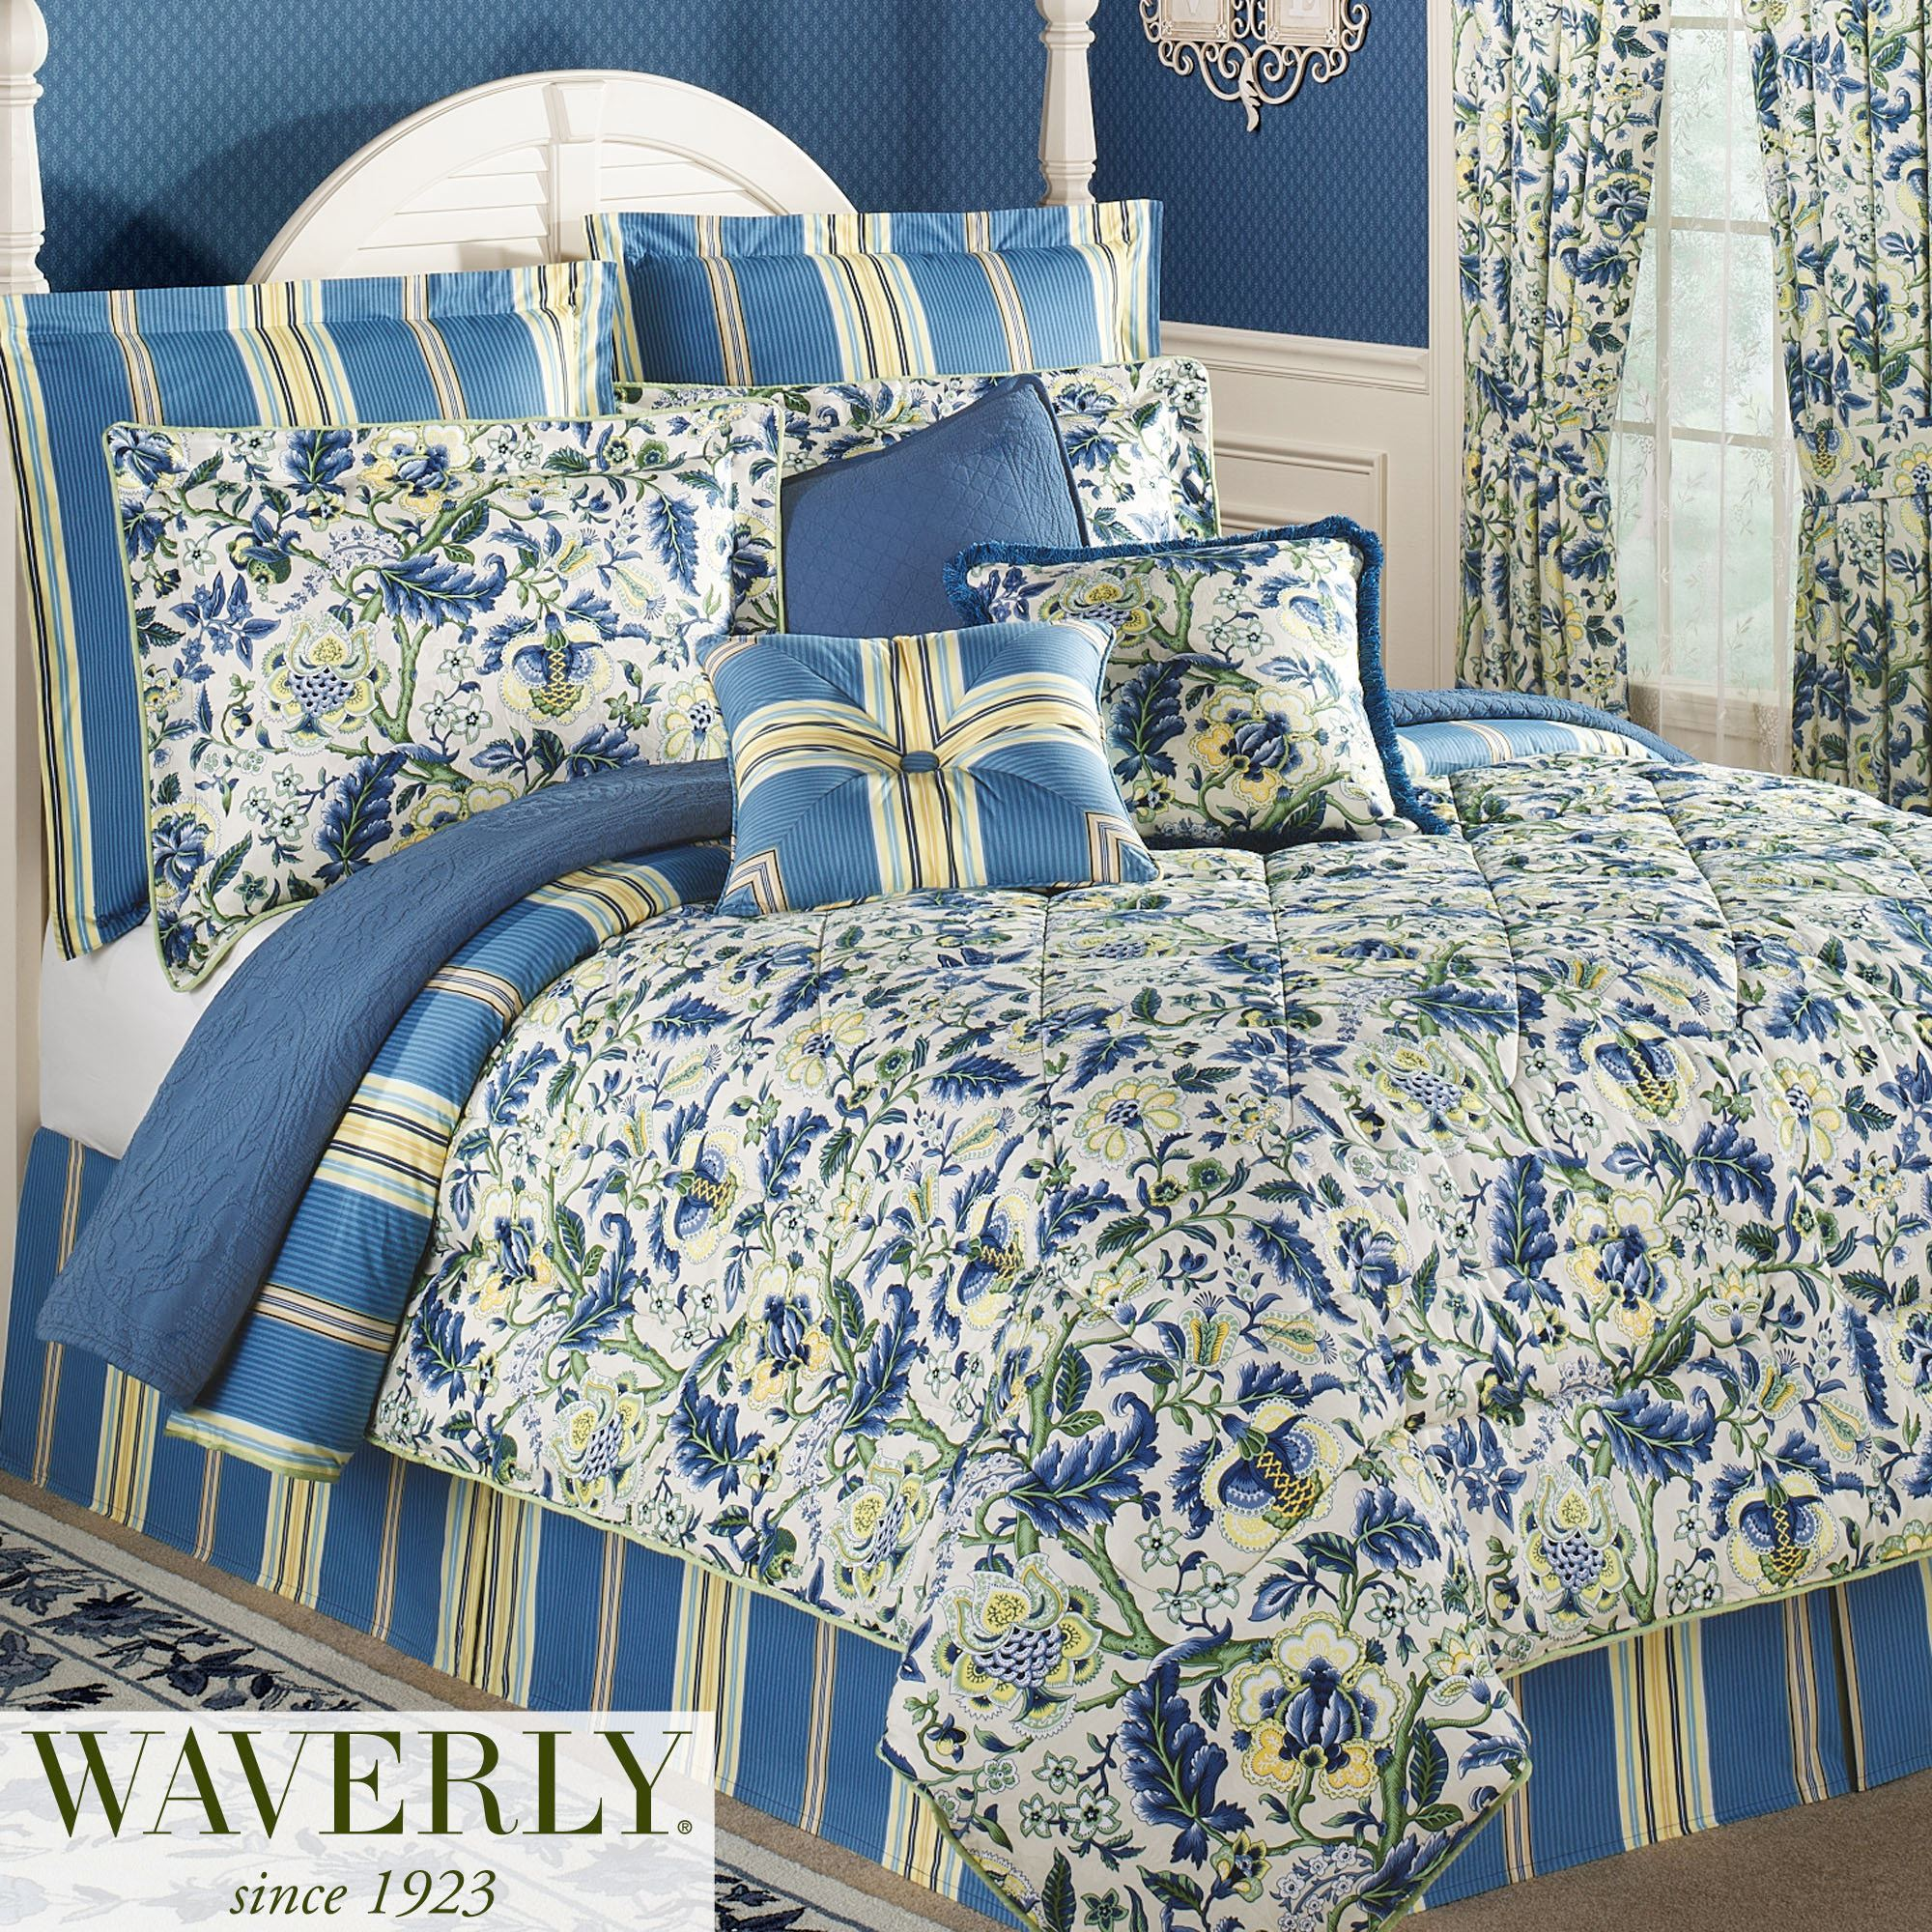 Bedroom Sets Clearance Free Shipping: Imperial Dress Comforter Bedding By Waverly